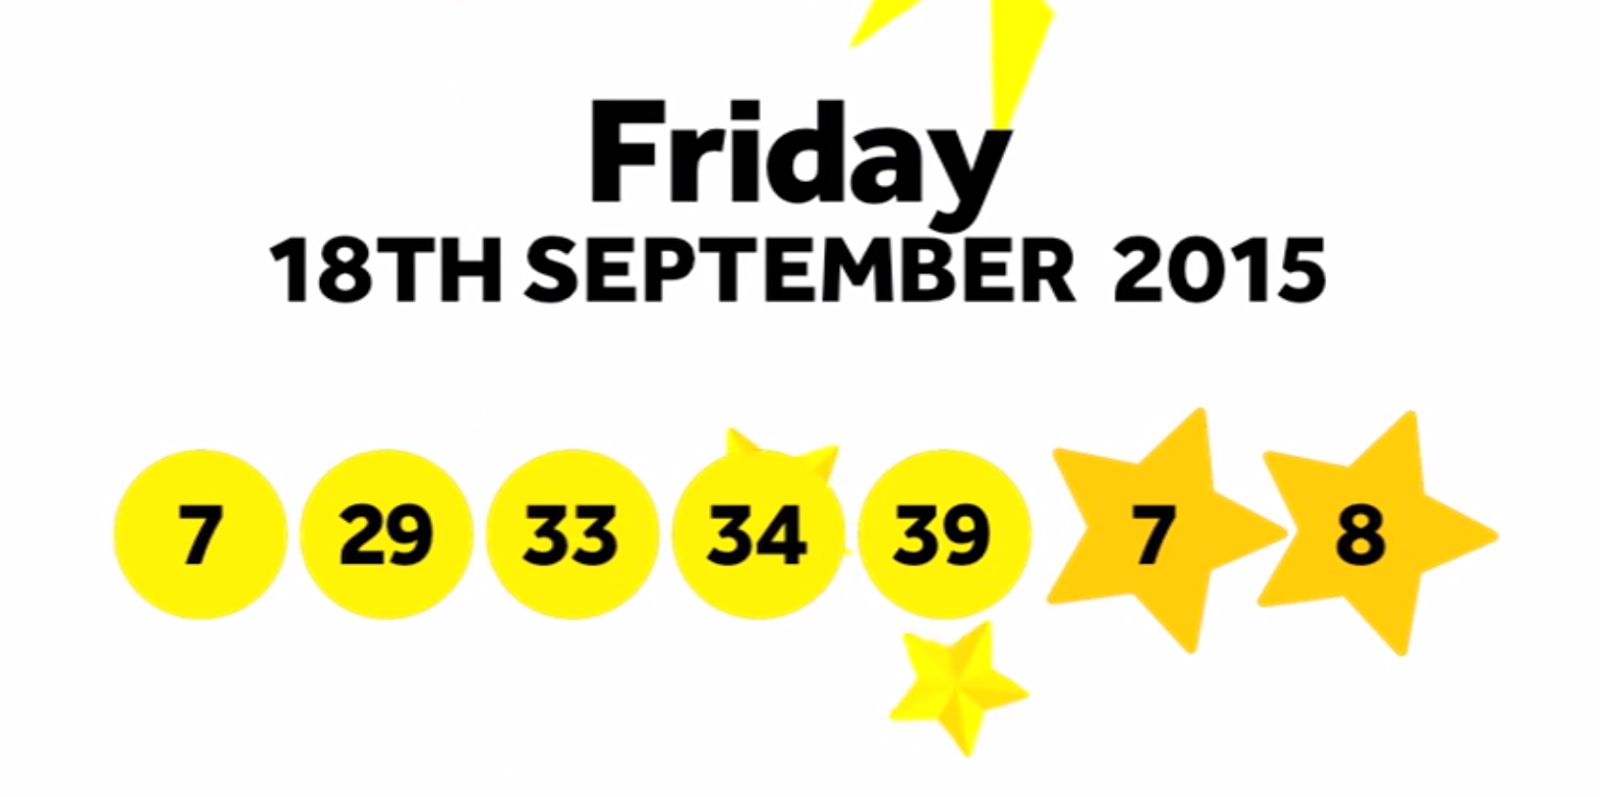 The National Lottery Friday 'EuroMillions' draw results from 18th September 2015